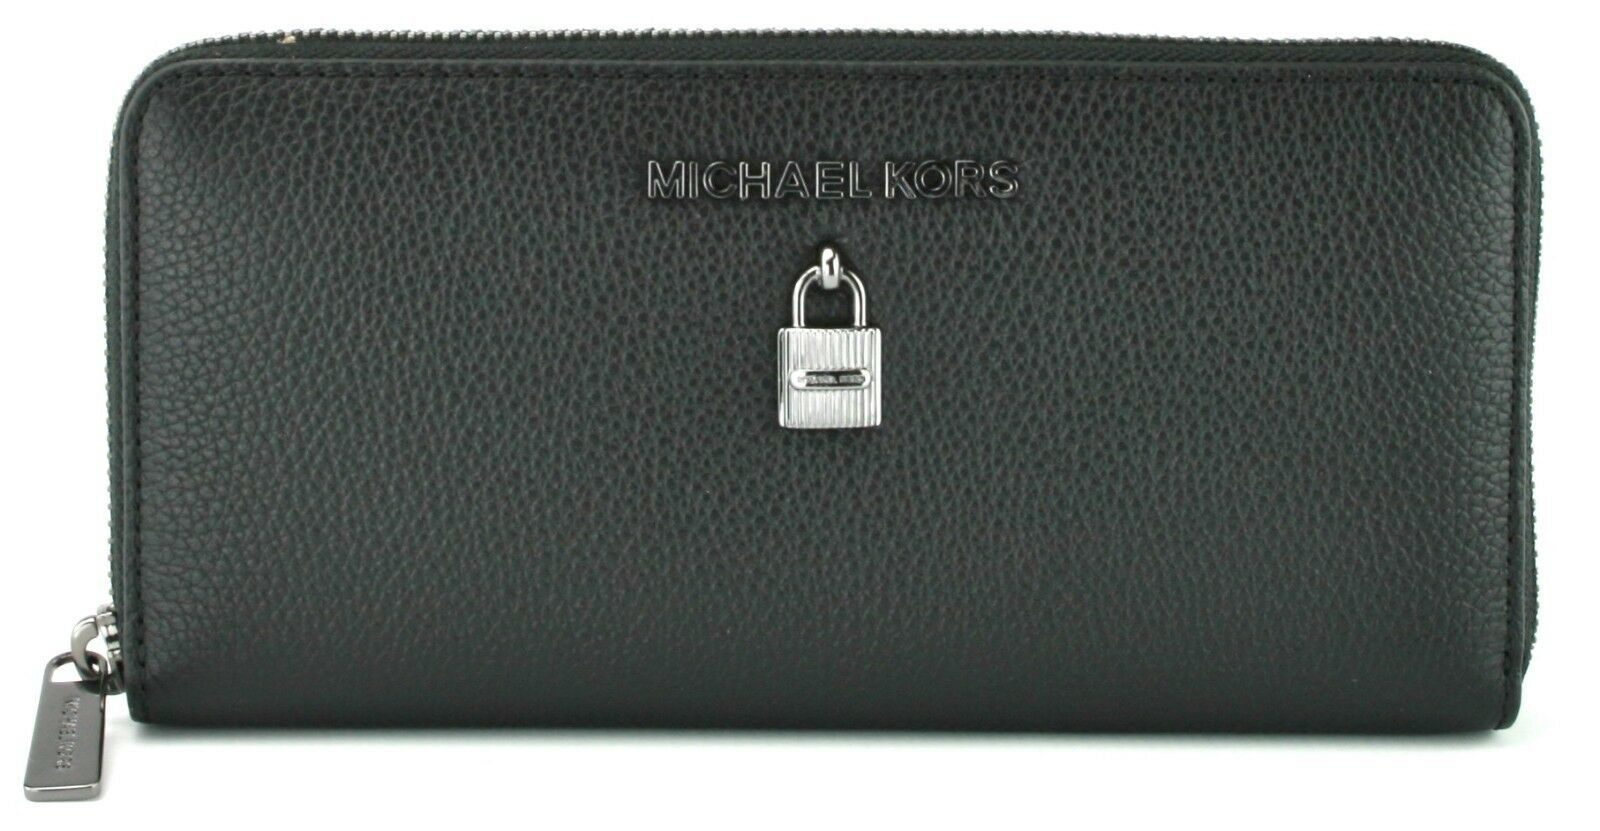 Primary image for Michael Kors Adele Purse Zip Around Wallet Black Pebbled Large Leather